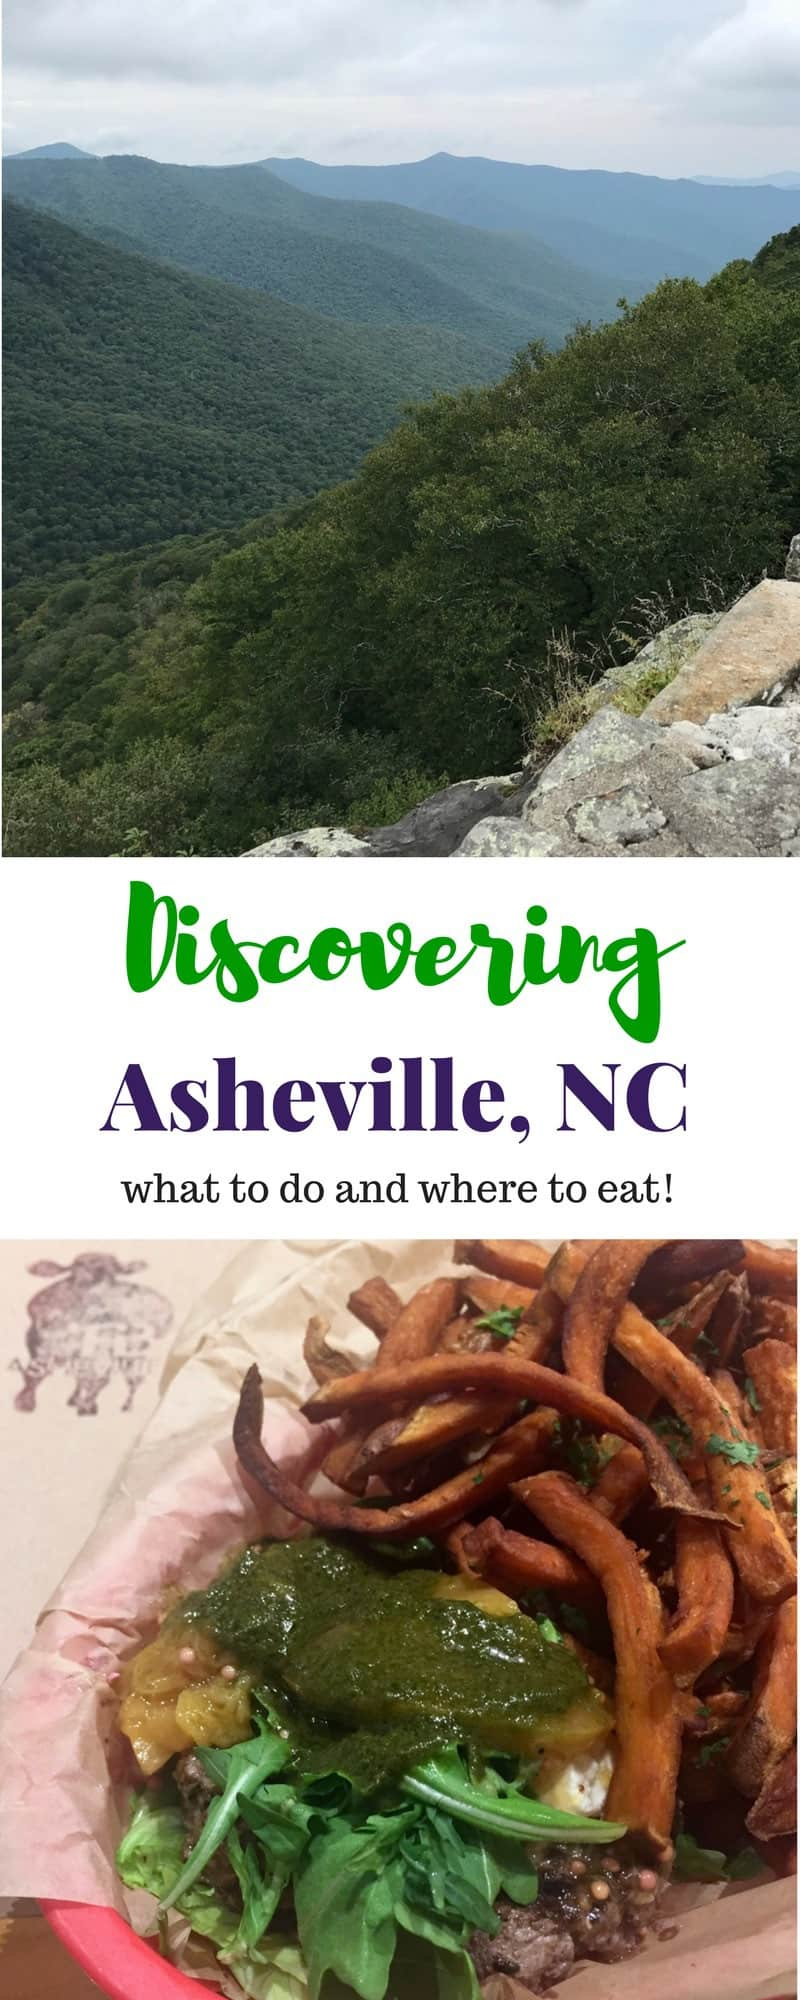 Helping you discover Asheville, NC with a breakdown of what to do, where to eat, and where to stay! - Eat the Gains